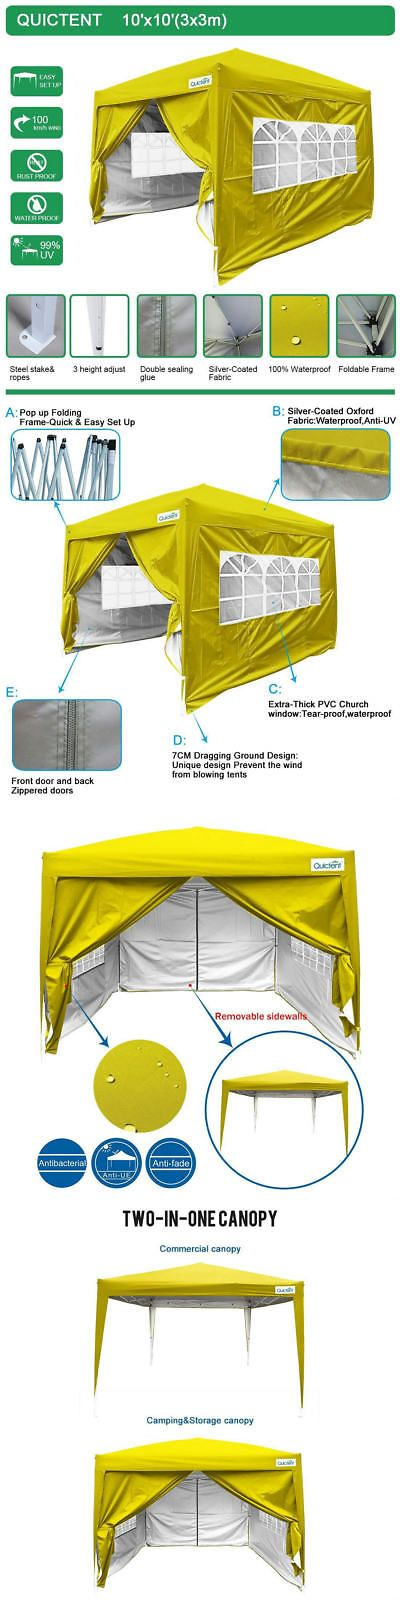 Marquees and Tents 180994: Quictent Silvox Waterproof 8X8 Ez Pop Up Canopy Gazebo Party Tent W Sides Yellow -> BUY IT NOW ONLY: $129.99 on eBay!